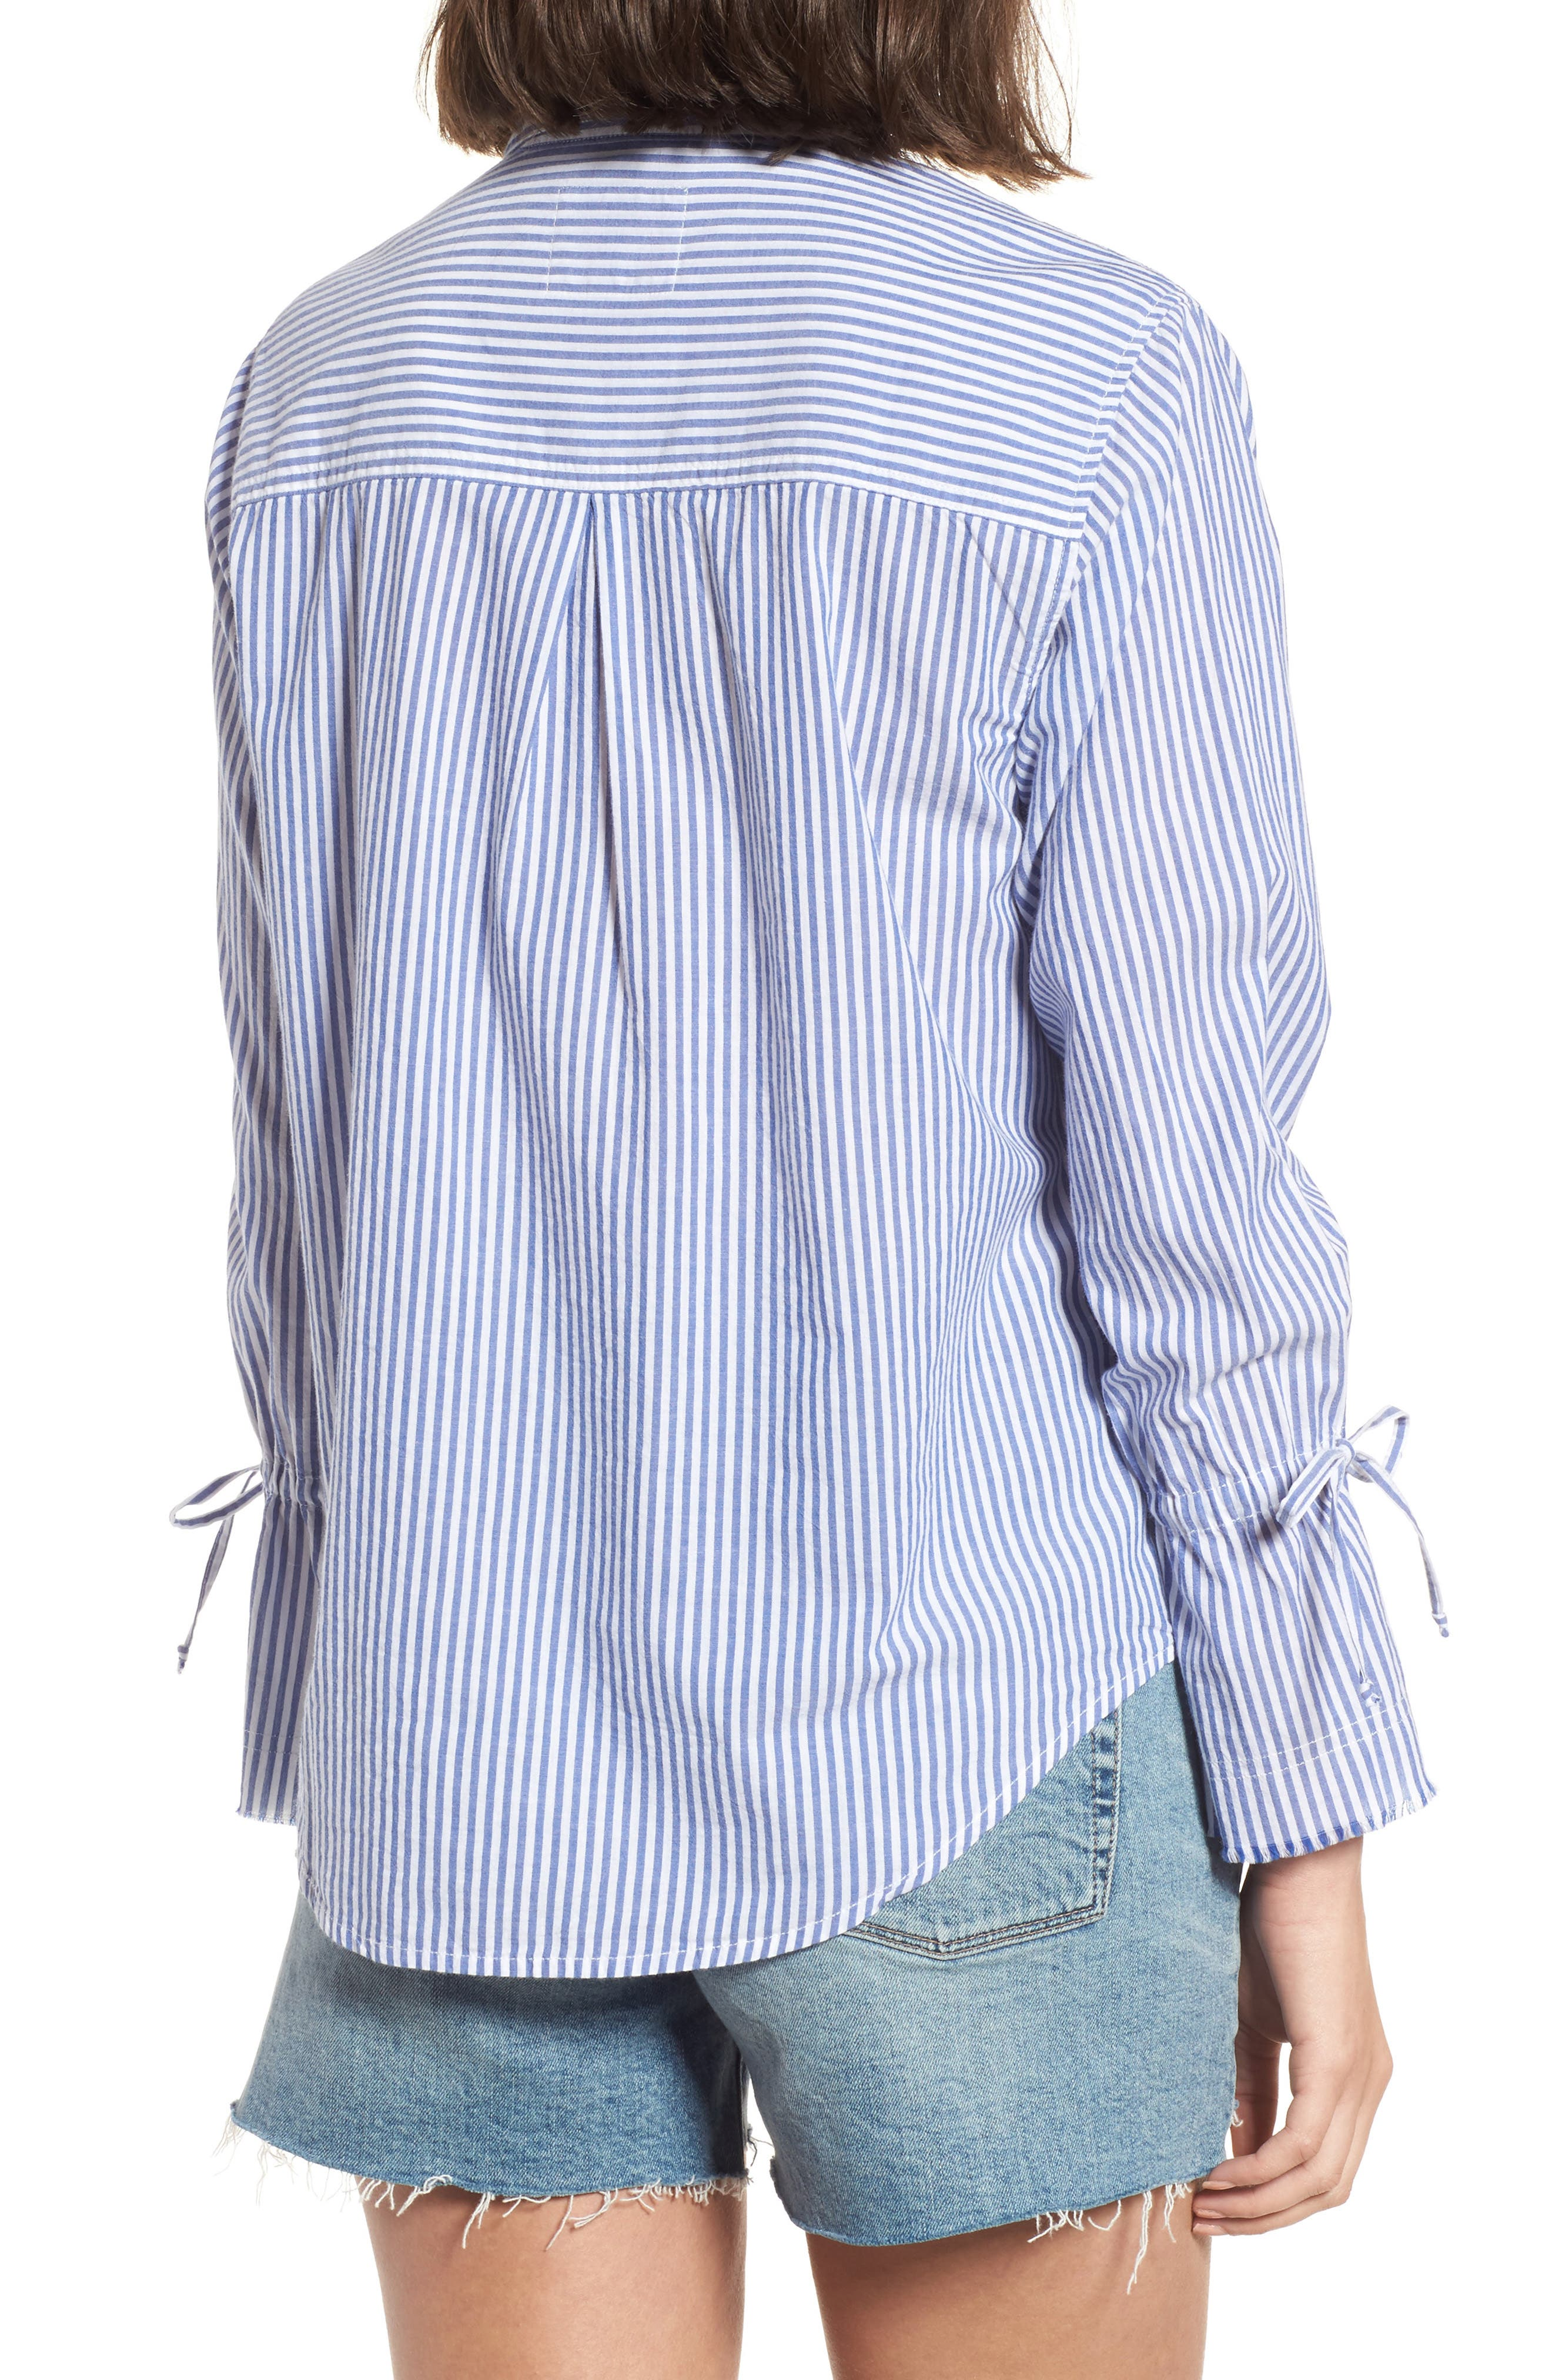 Astrid Tie Cuff Shirt,                             Alternate thumbnail 2, color,                             Banker Stripe